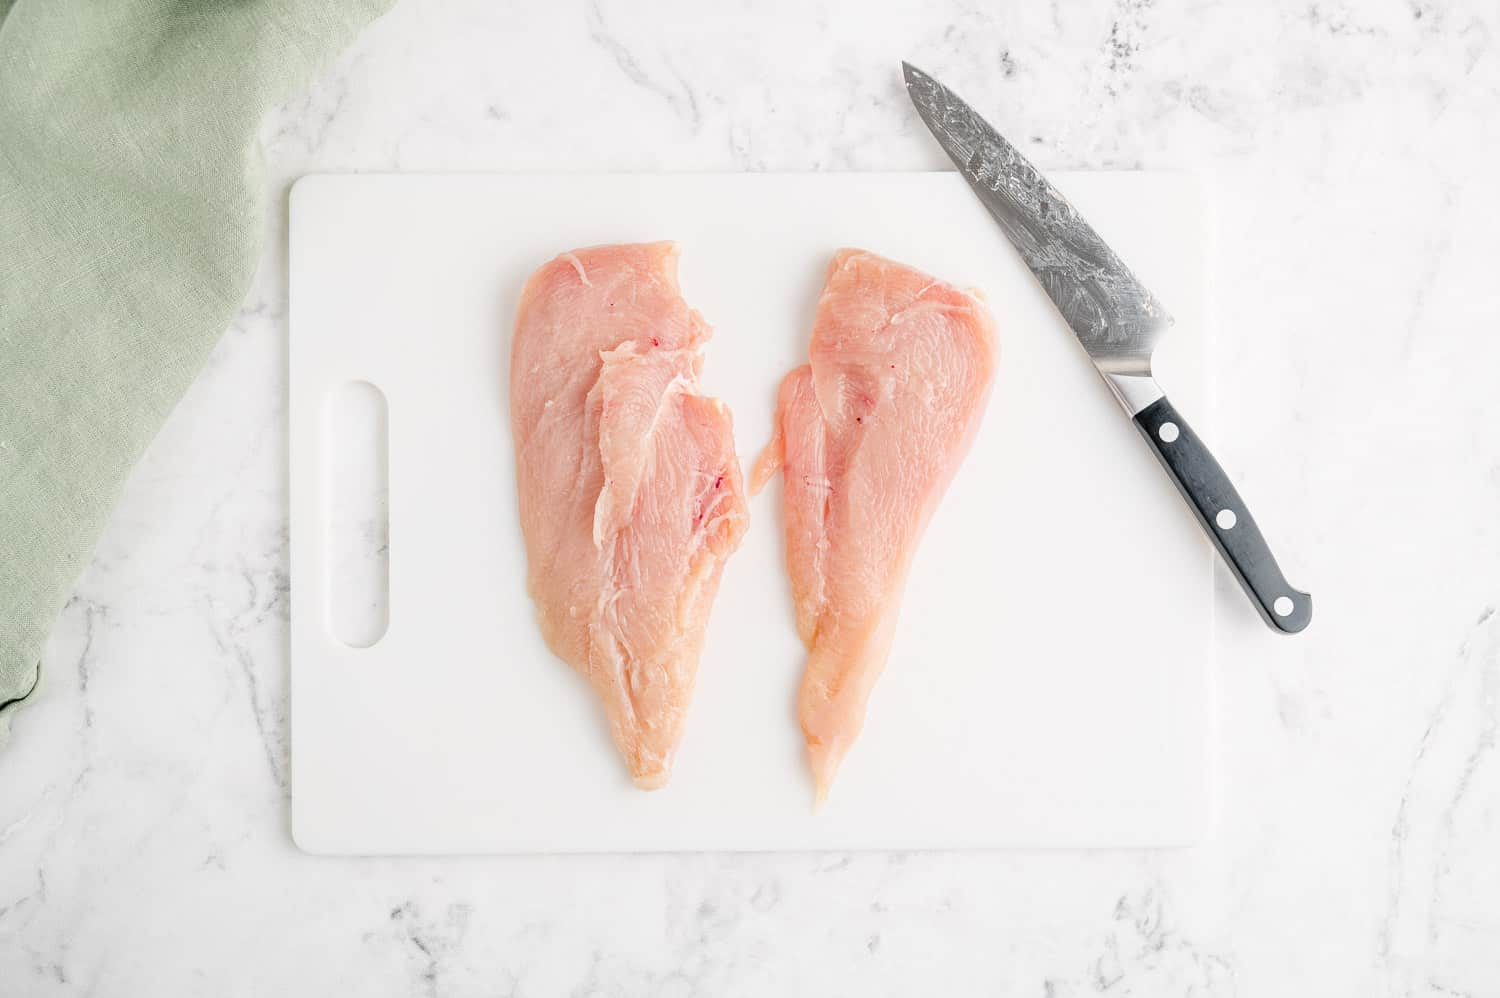 A chicken breast, cut in half to make thin cutlets.